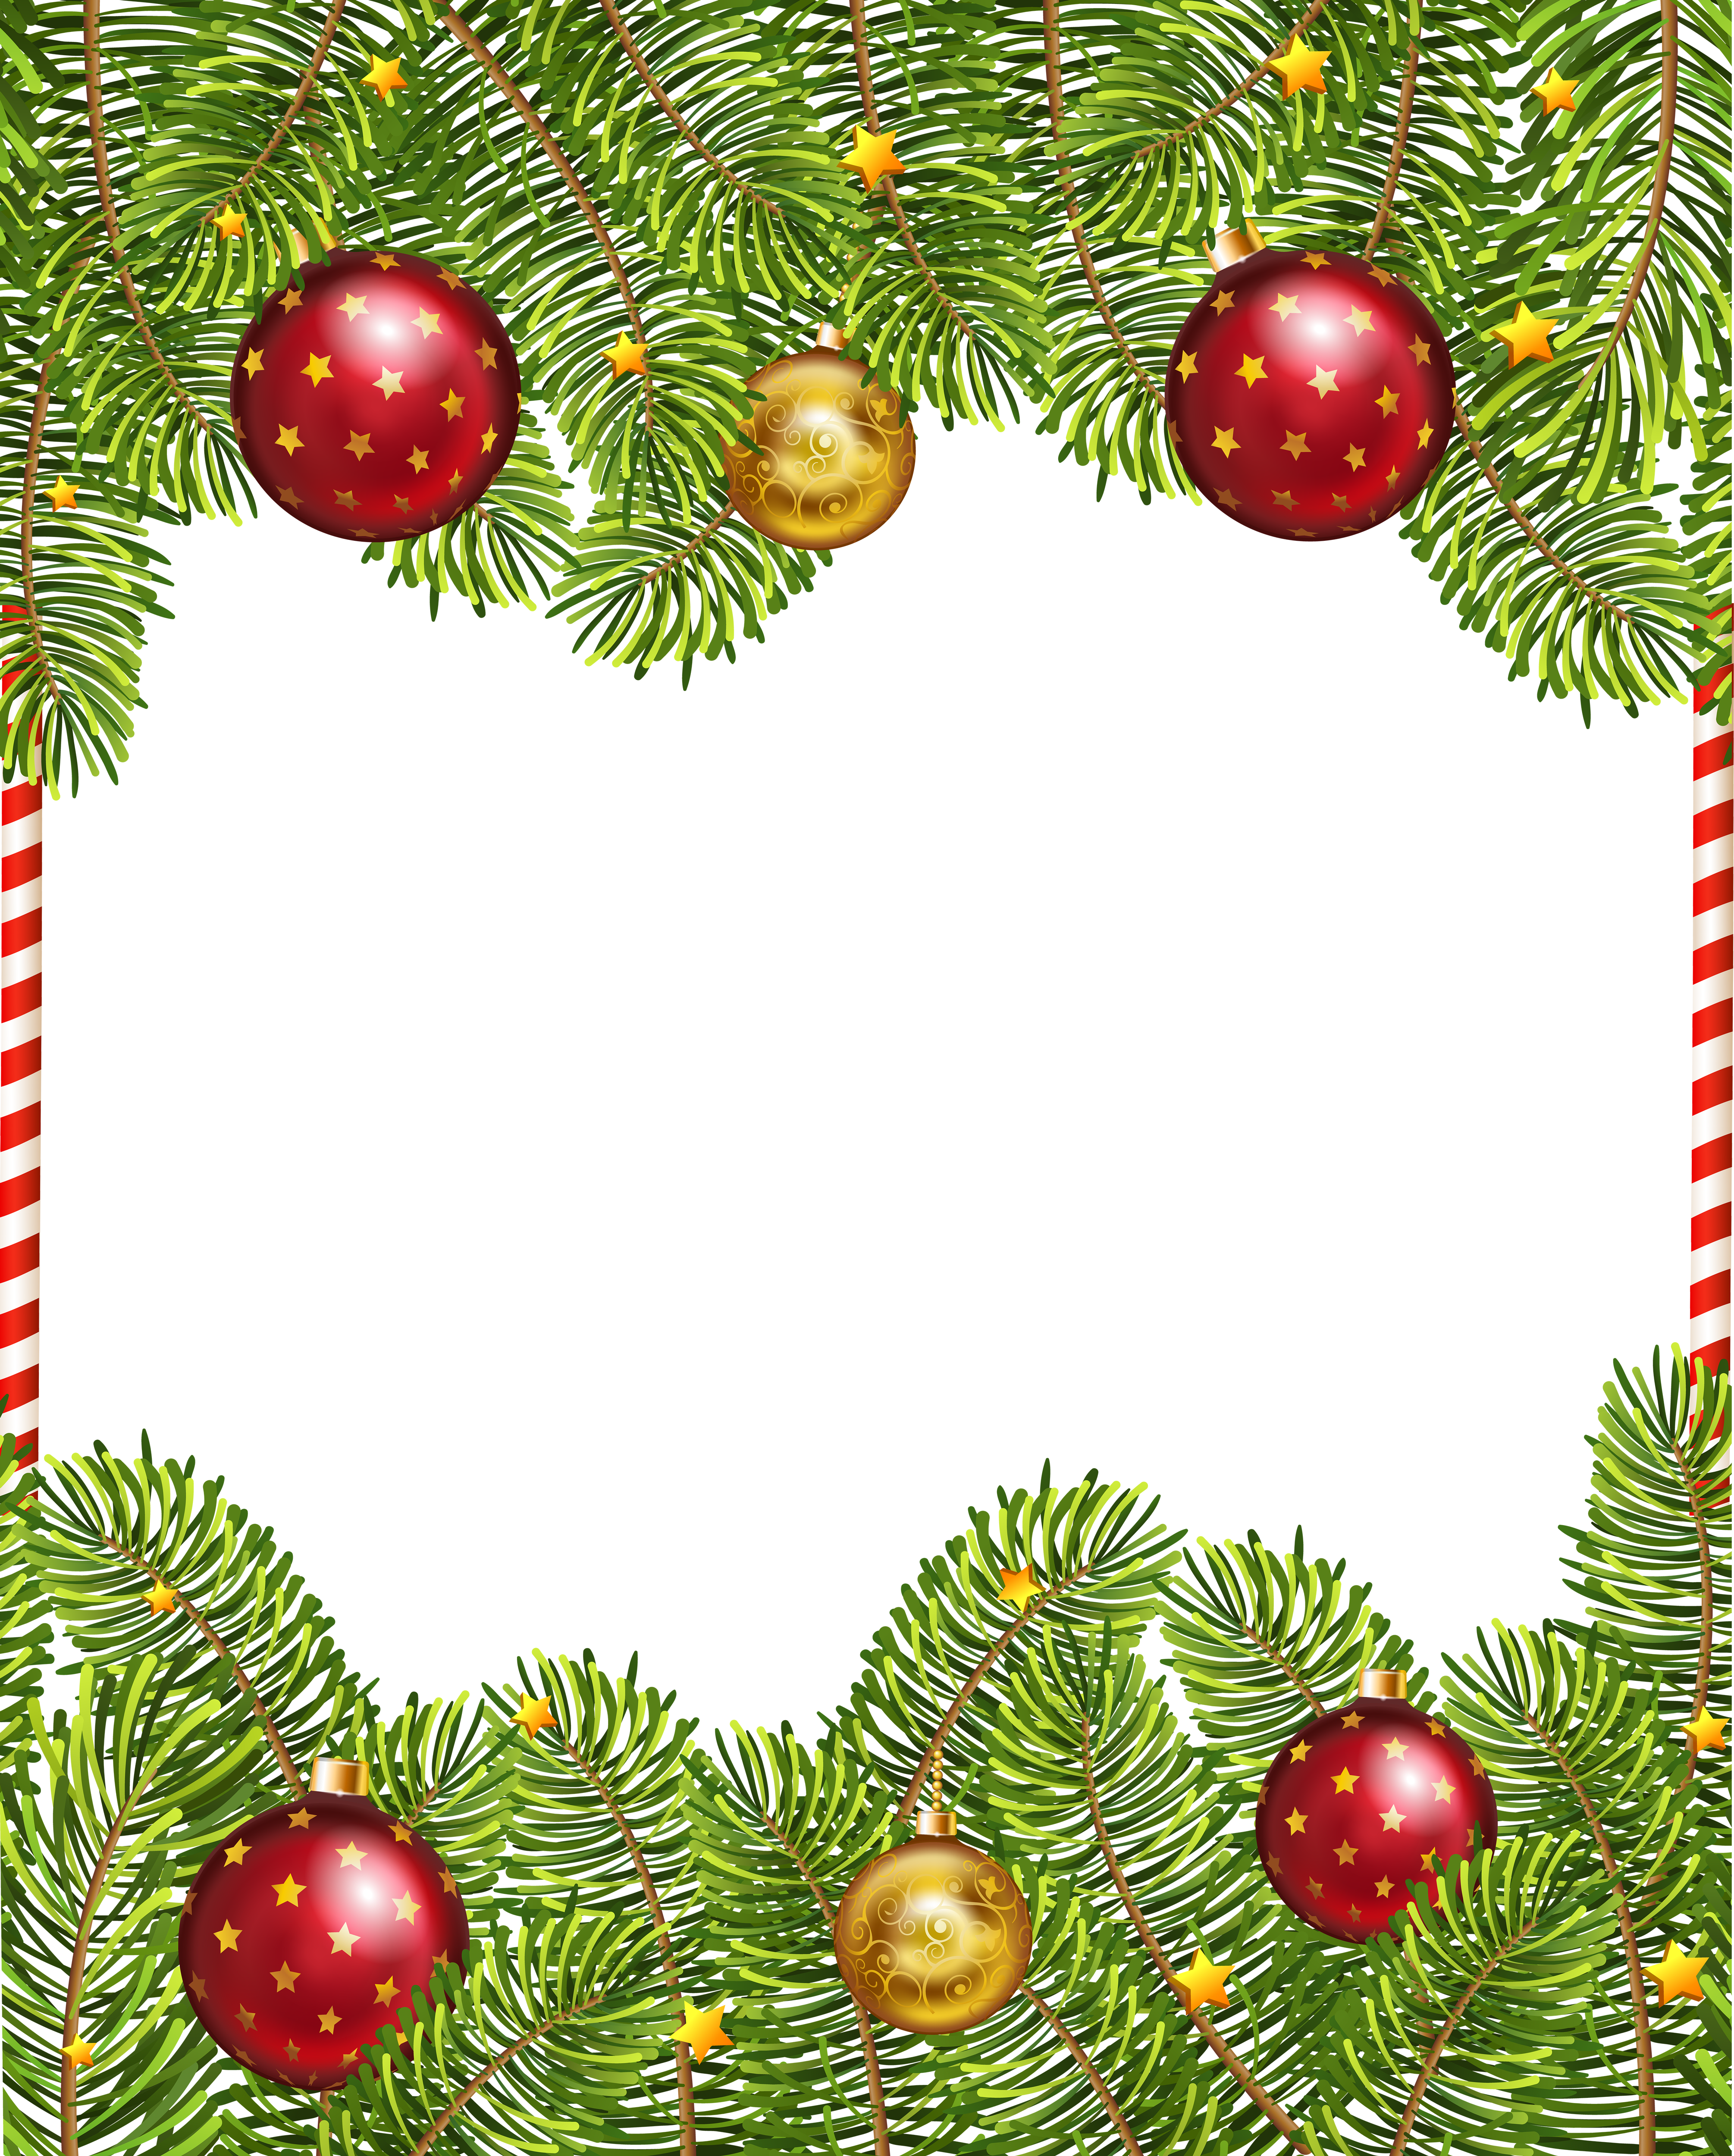 Christmas Invitation Background Png.Merry Christmas To You All Joe I Would Like To Invite You